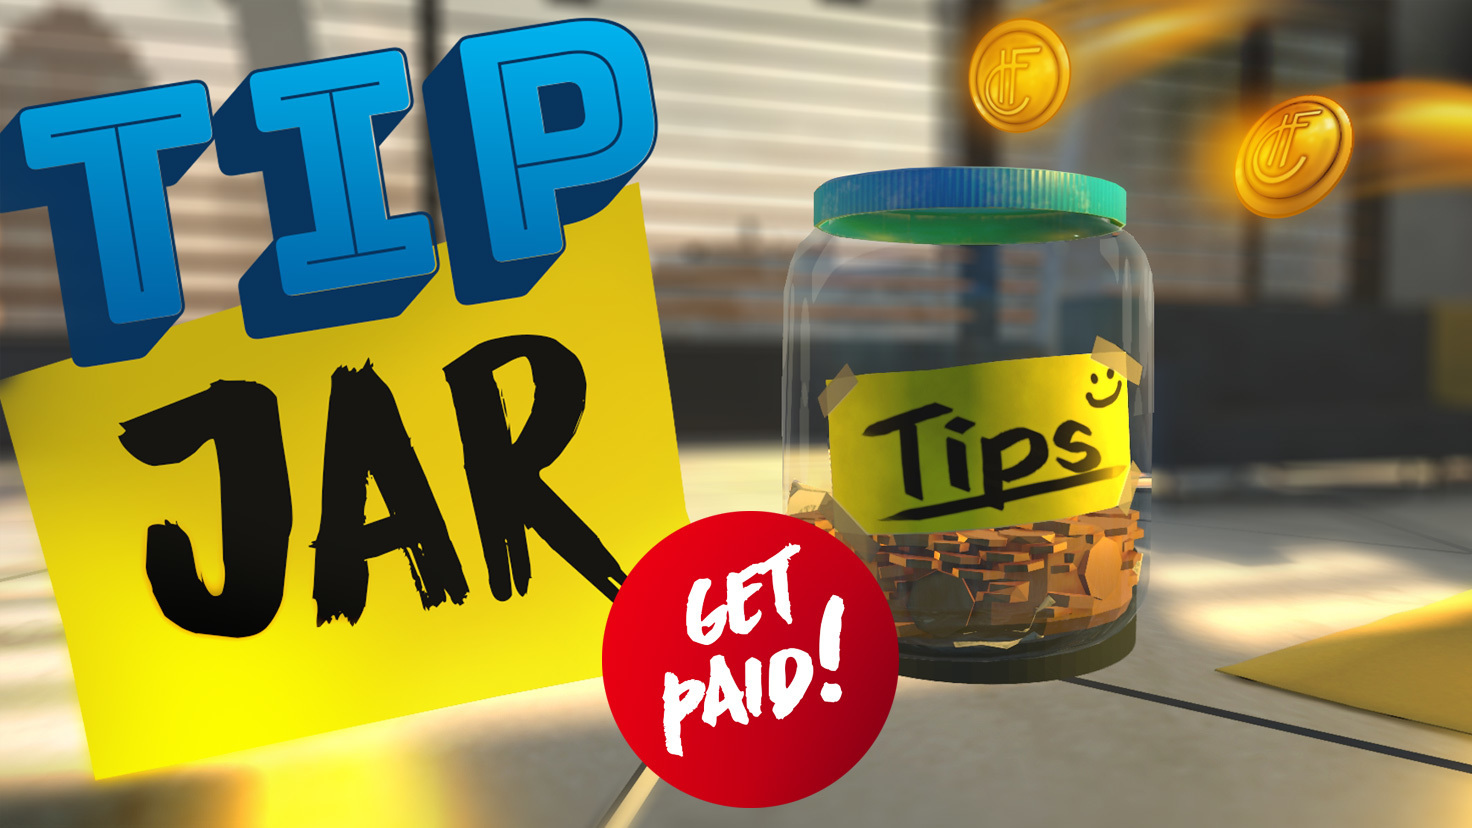 Tip Jar! - Apps, Scripts & Tools - Marketplace - High Fidelity